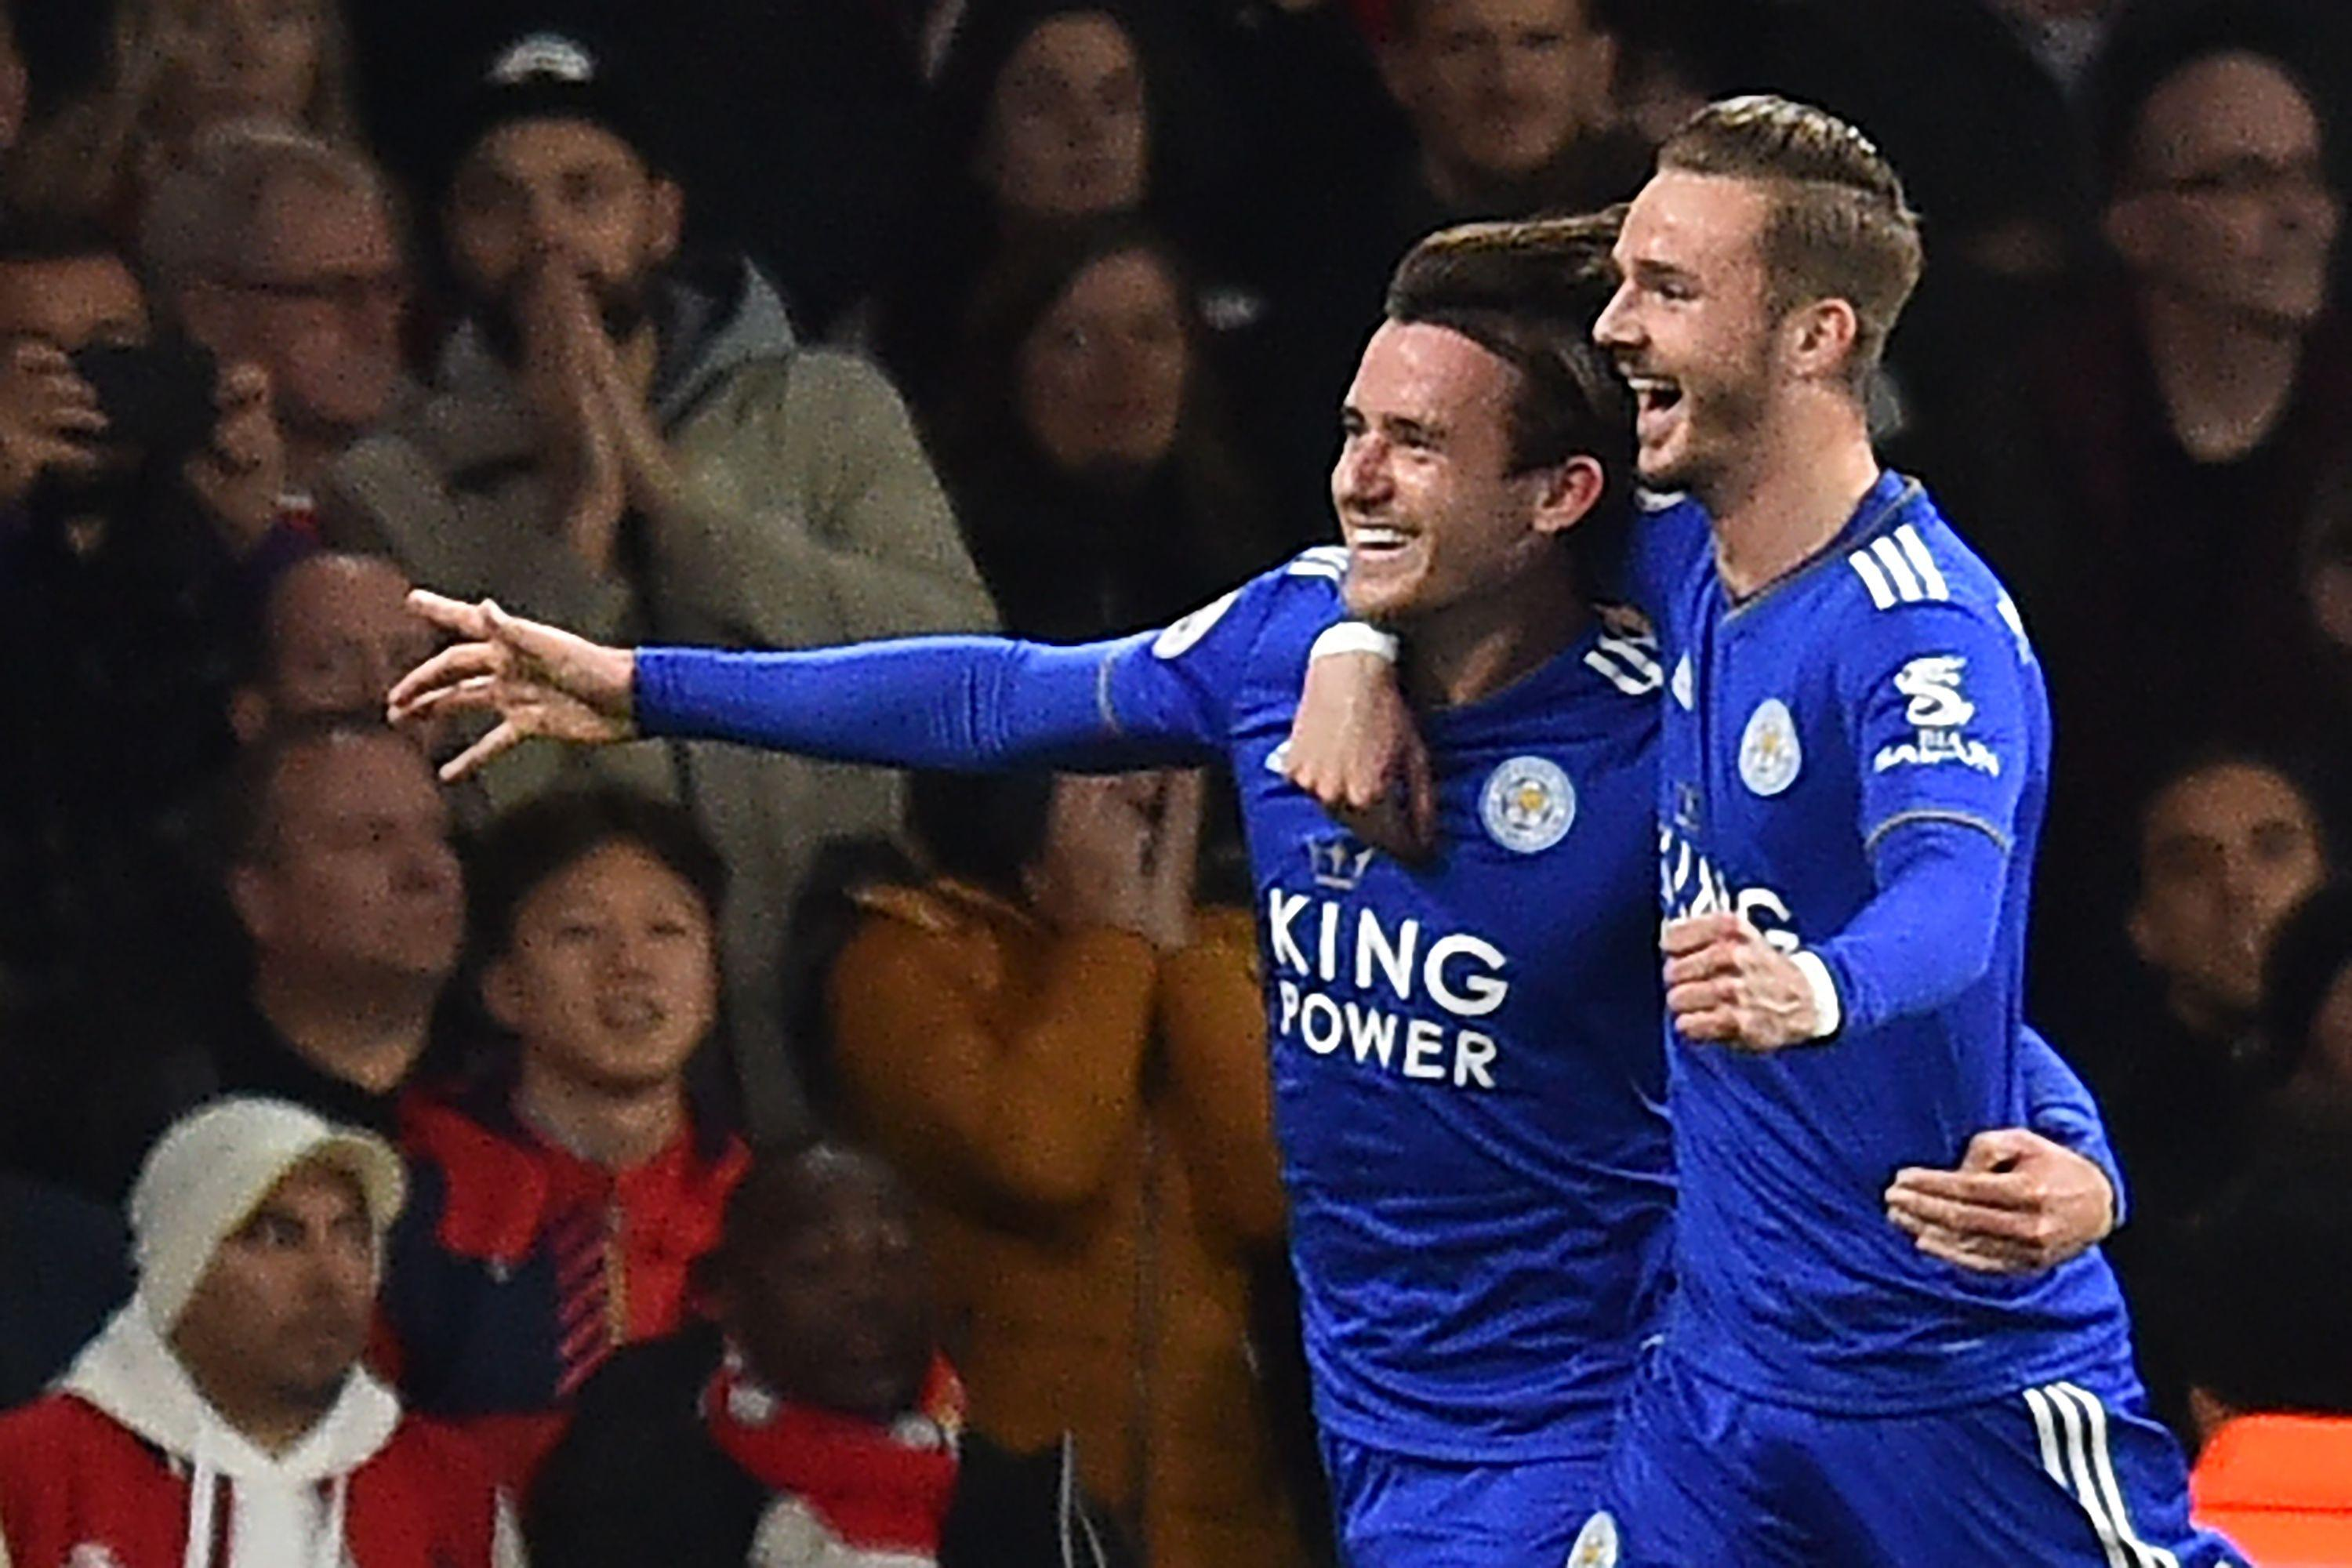 Ben Chilwell helped put Leicester ahead early on